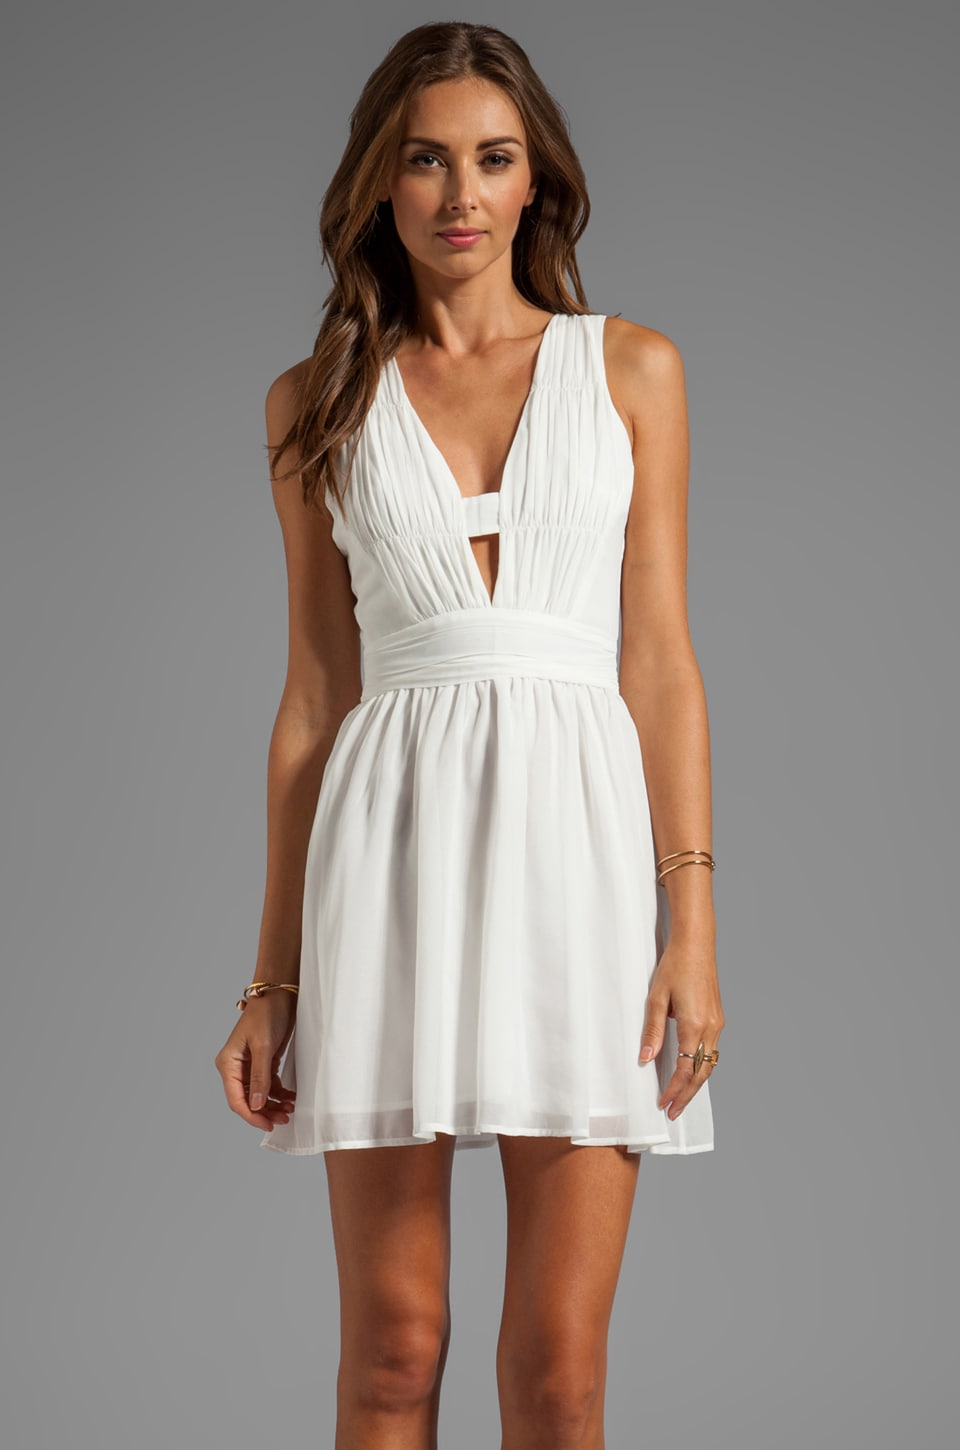 keepsake Love Struck Mini Tank Dress in Ivory